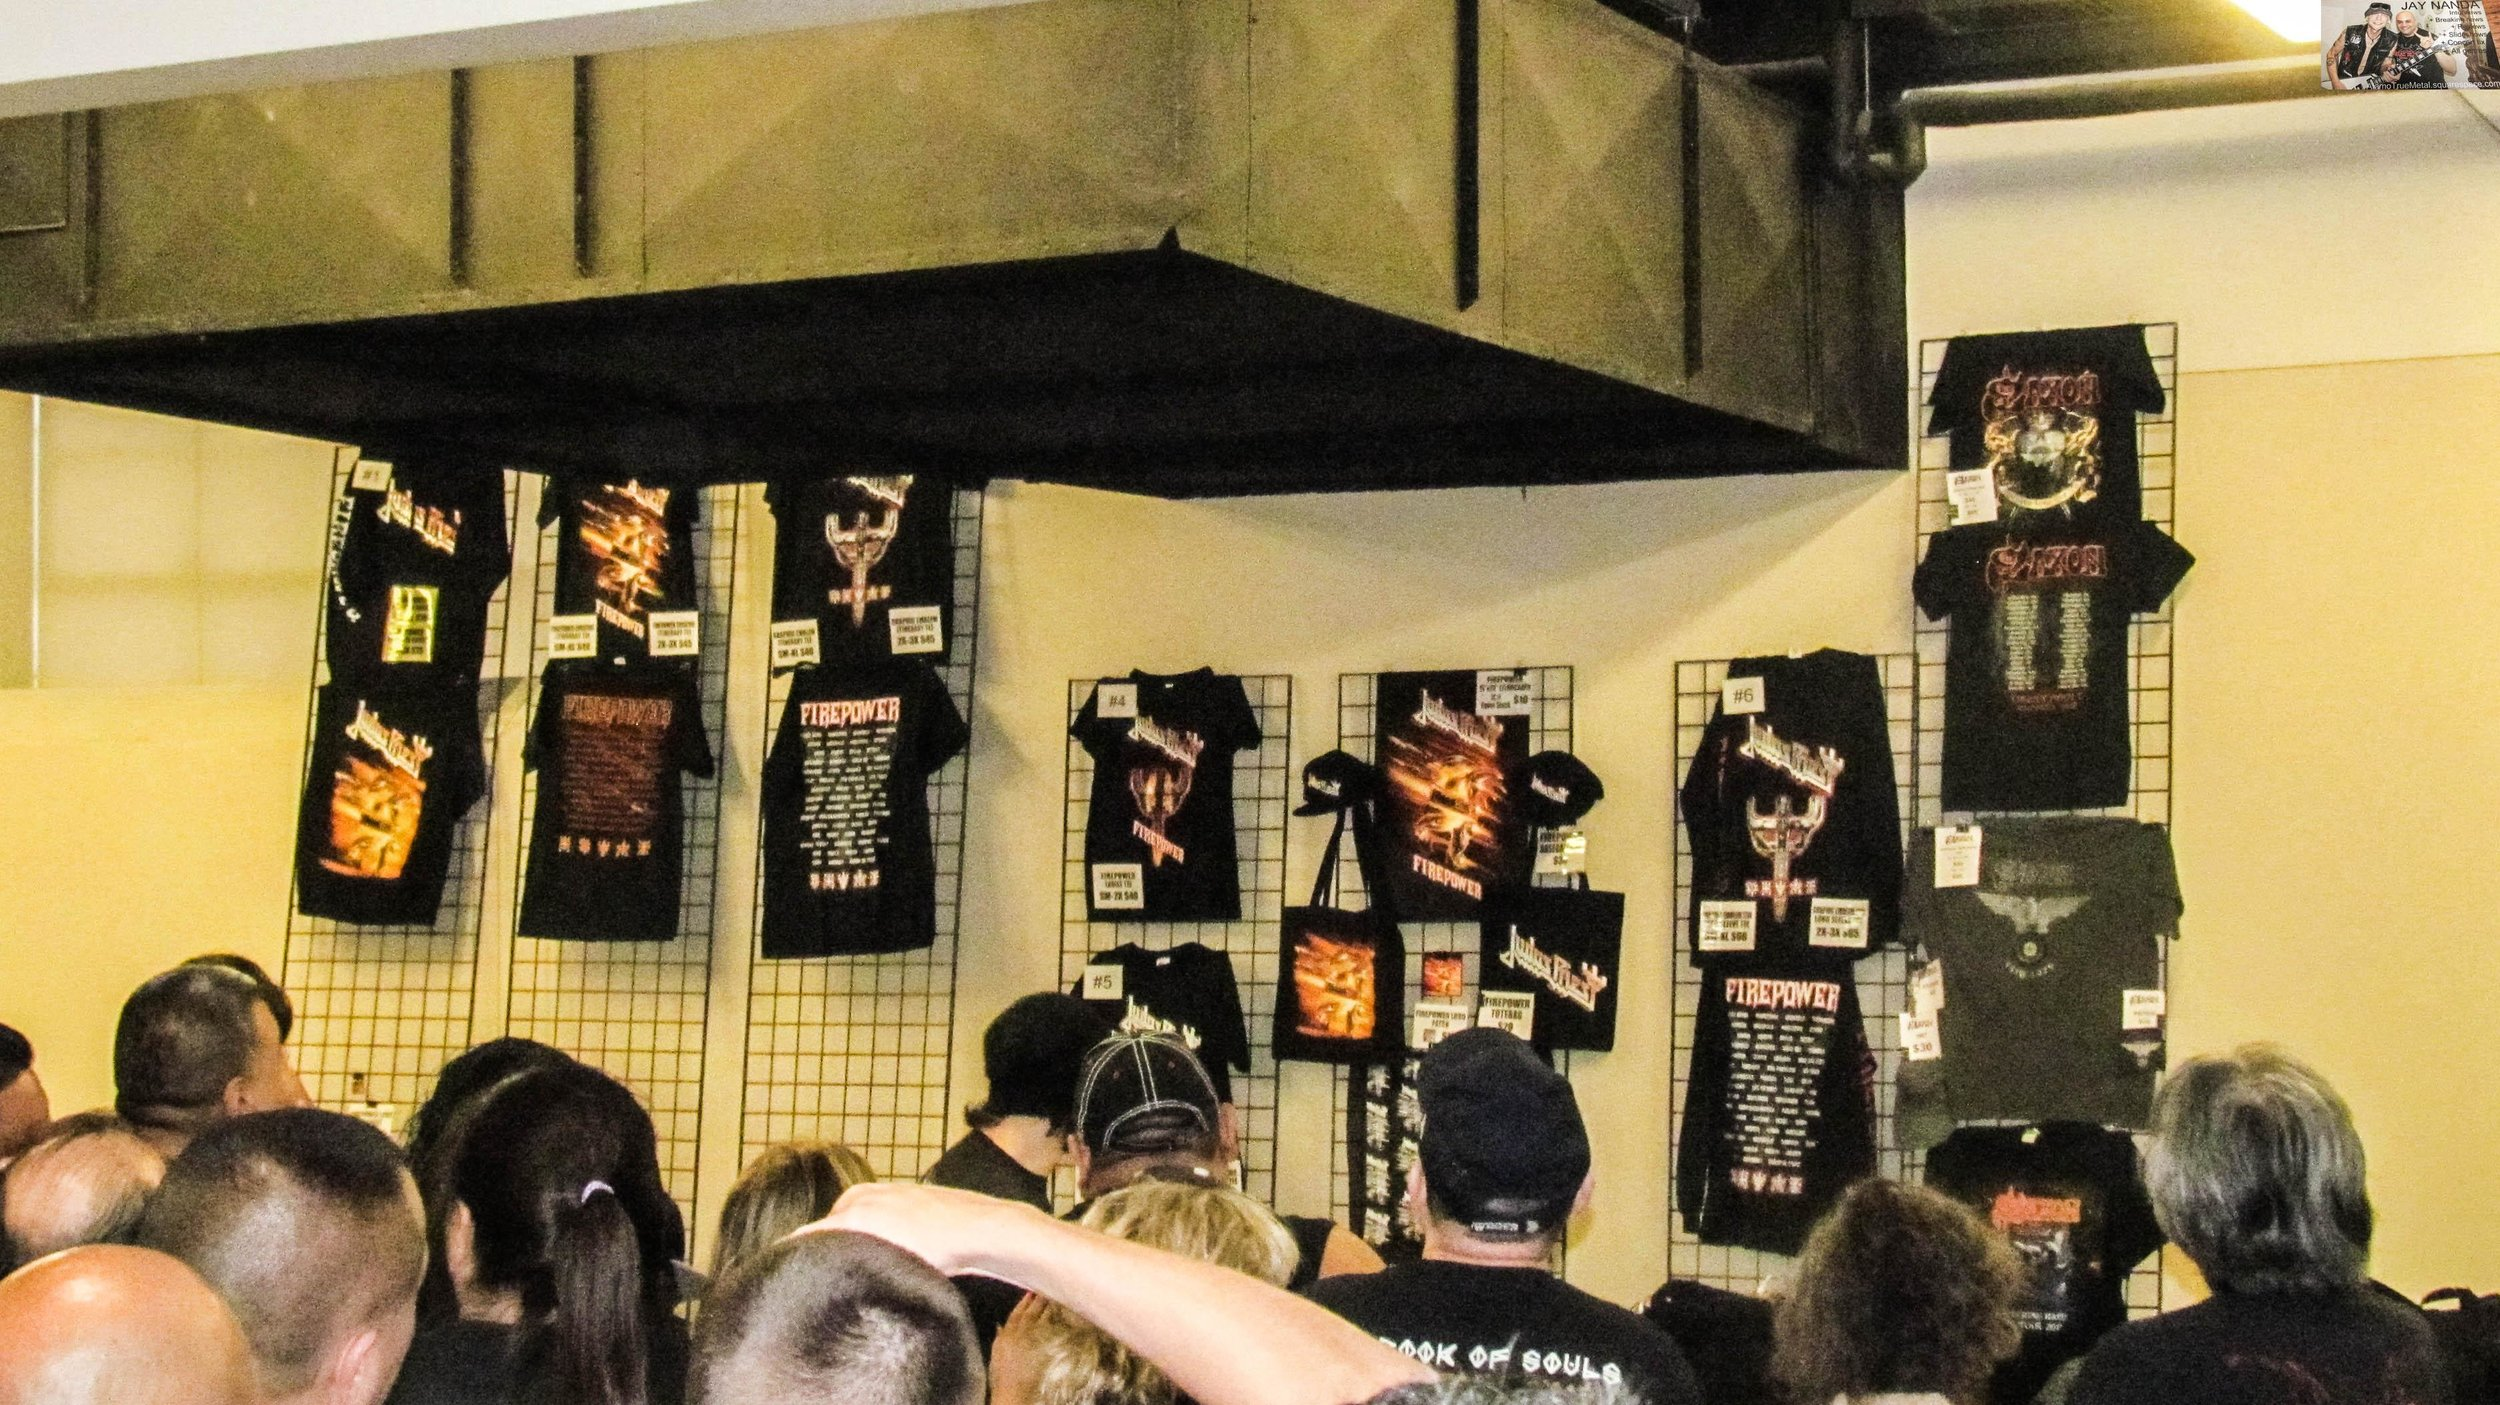 The merch booth displays Judas Priest and Saxon T-shirts.